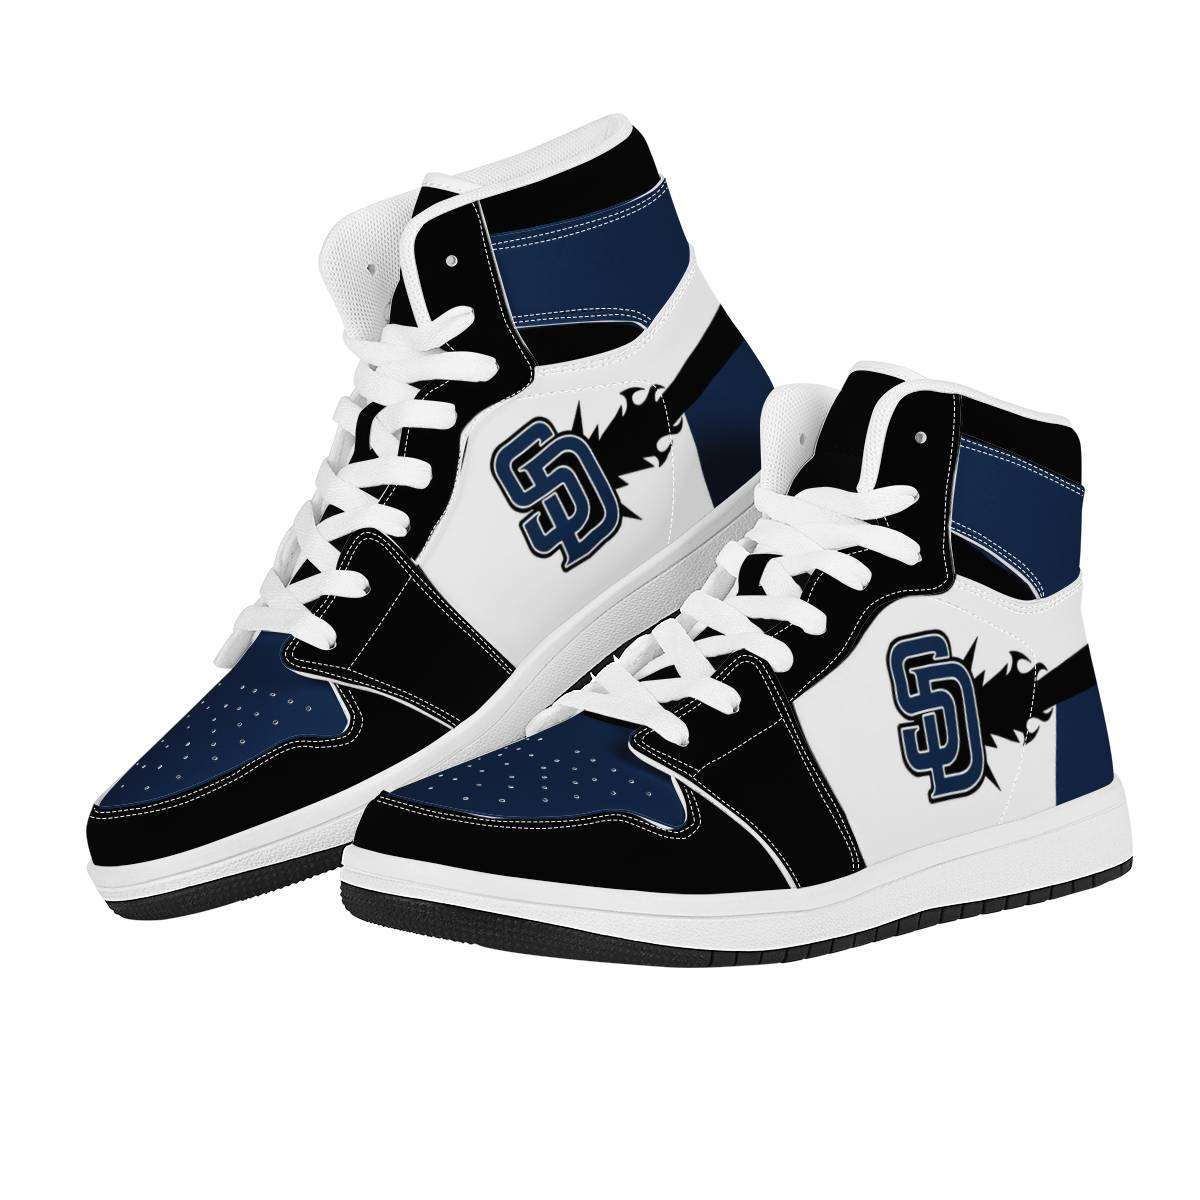 Men's San Diego Padres High Top Leather AJ1 Sneakers 001